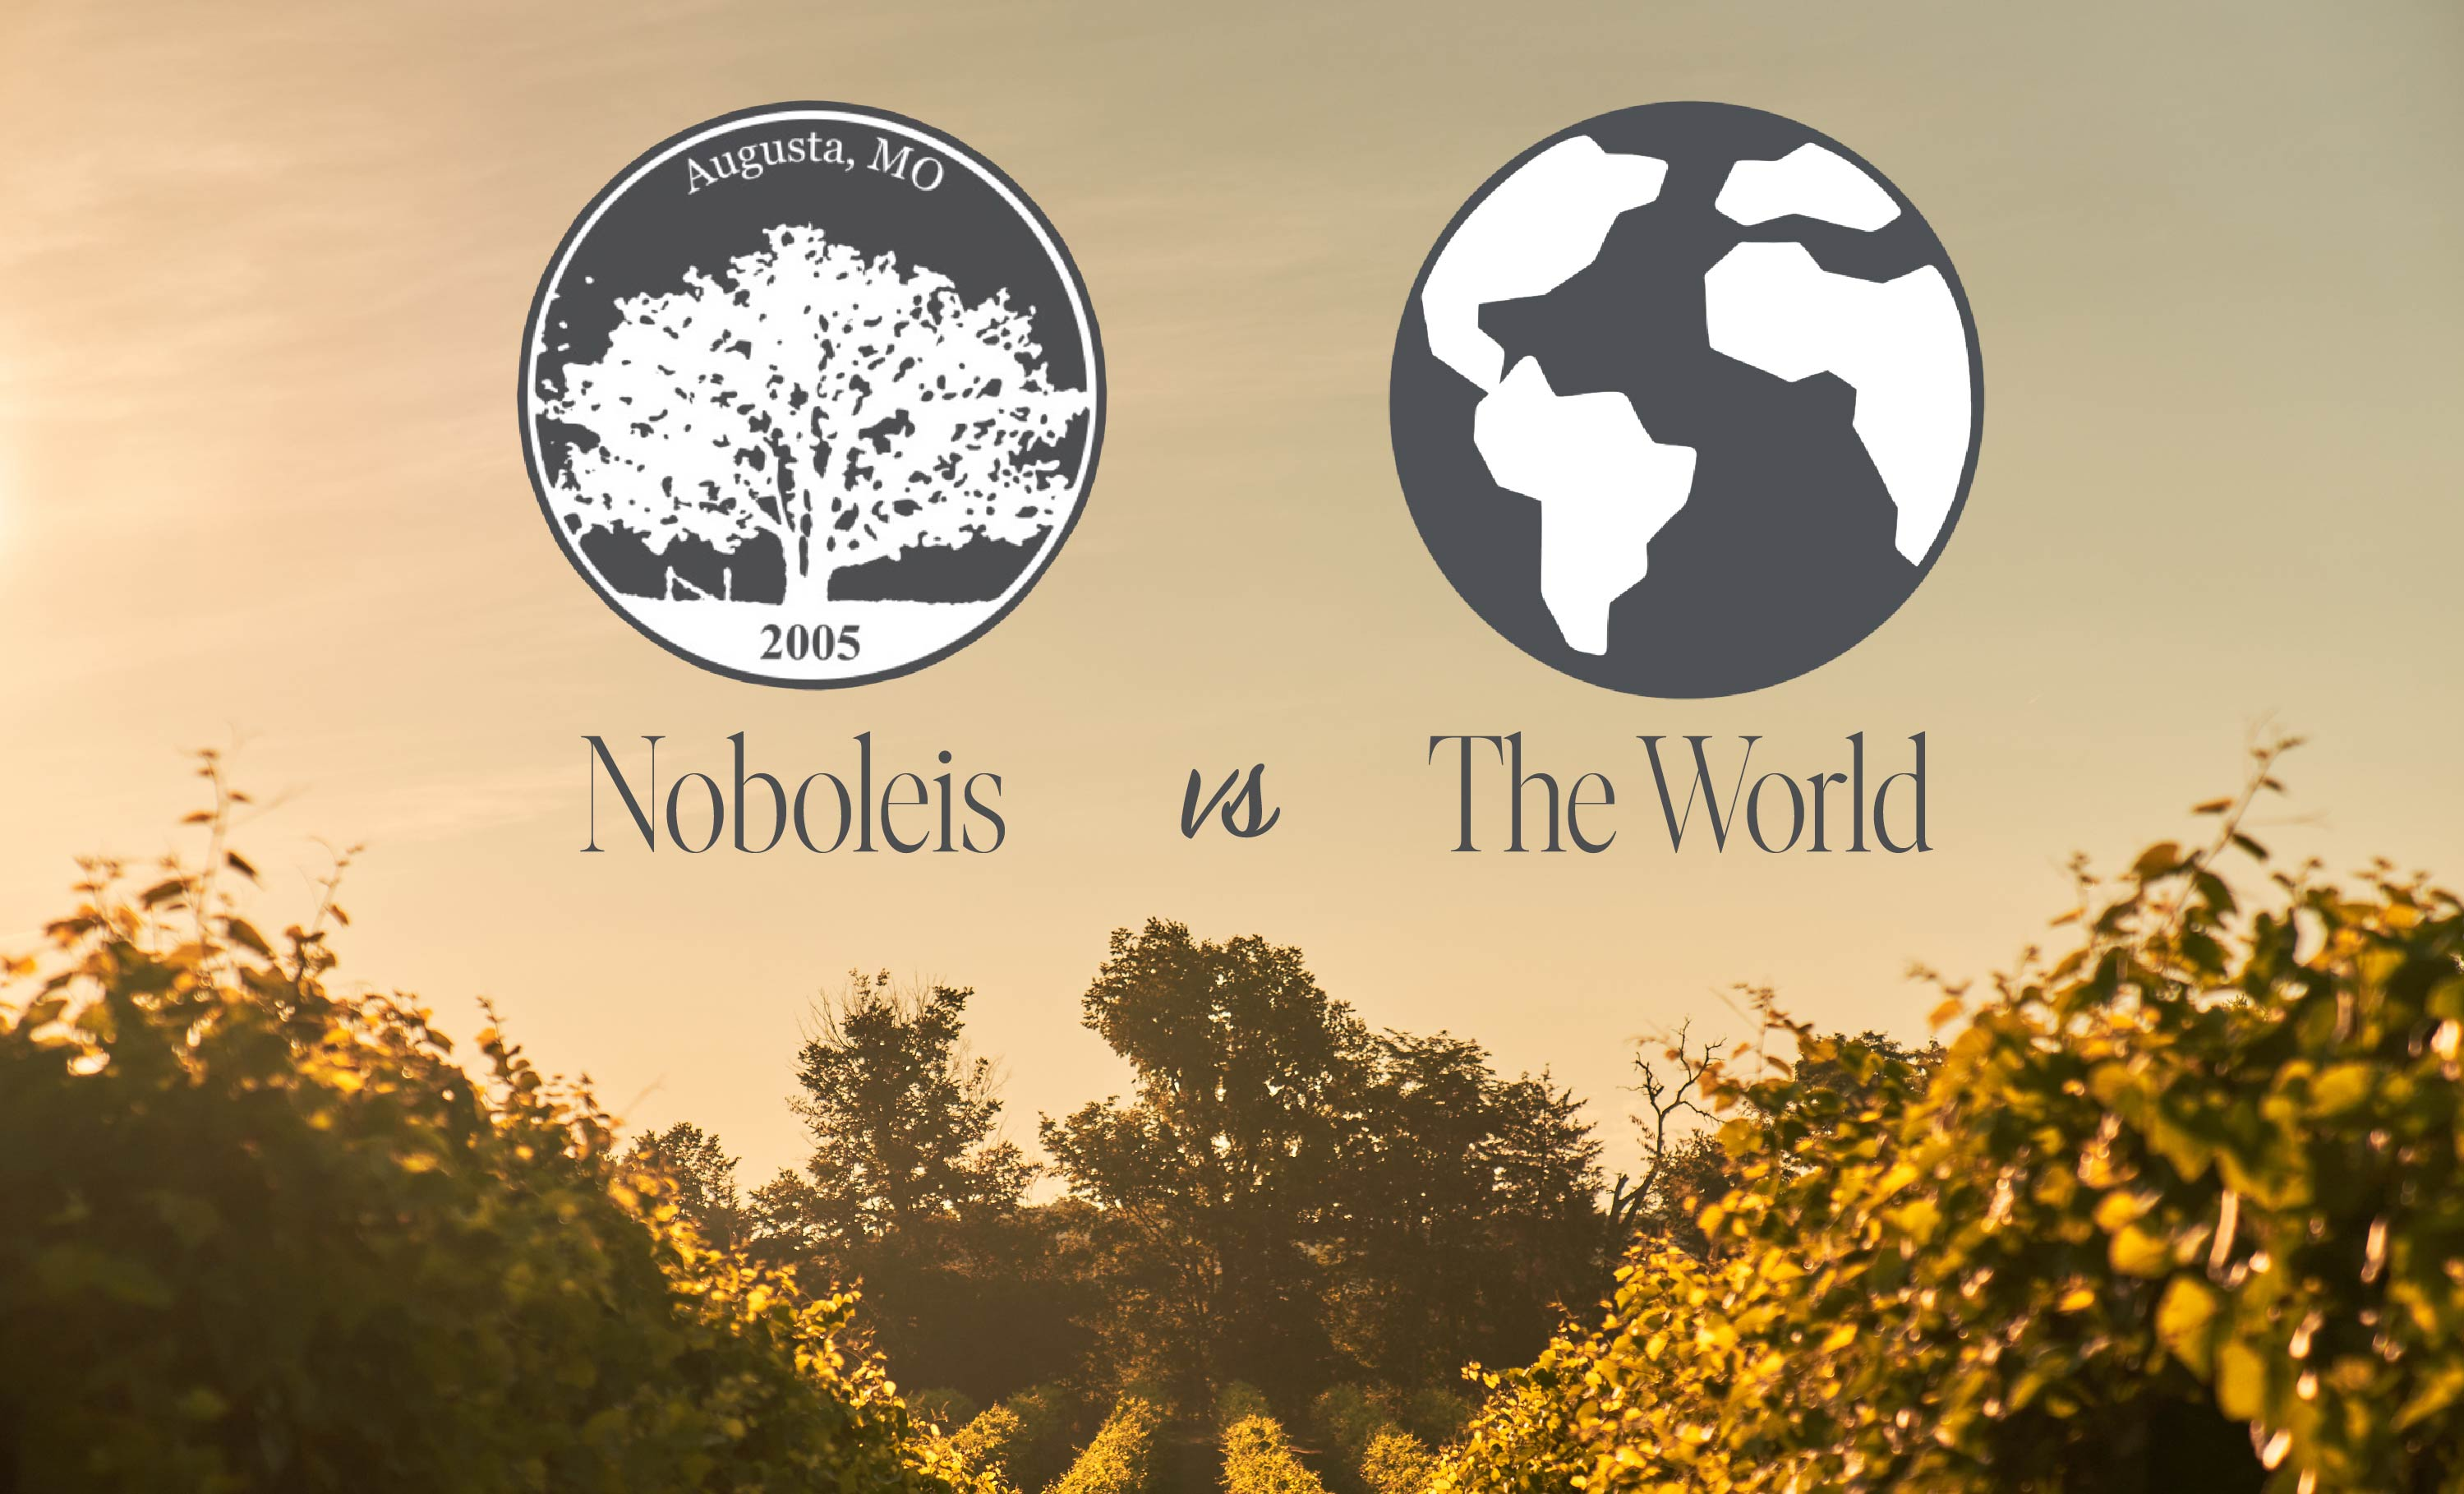 Noboleis vs. The World